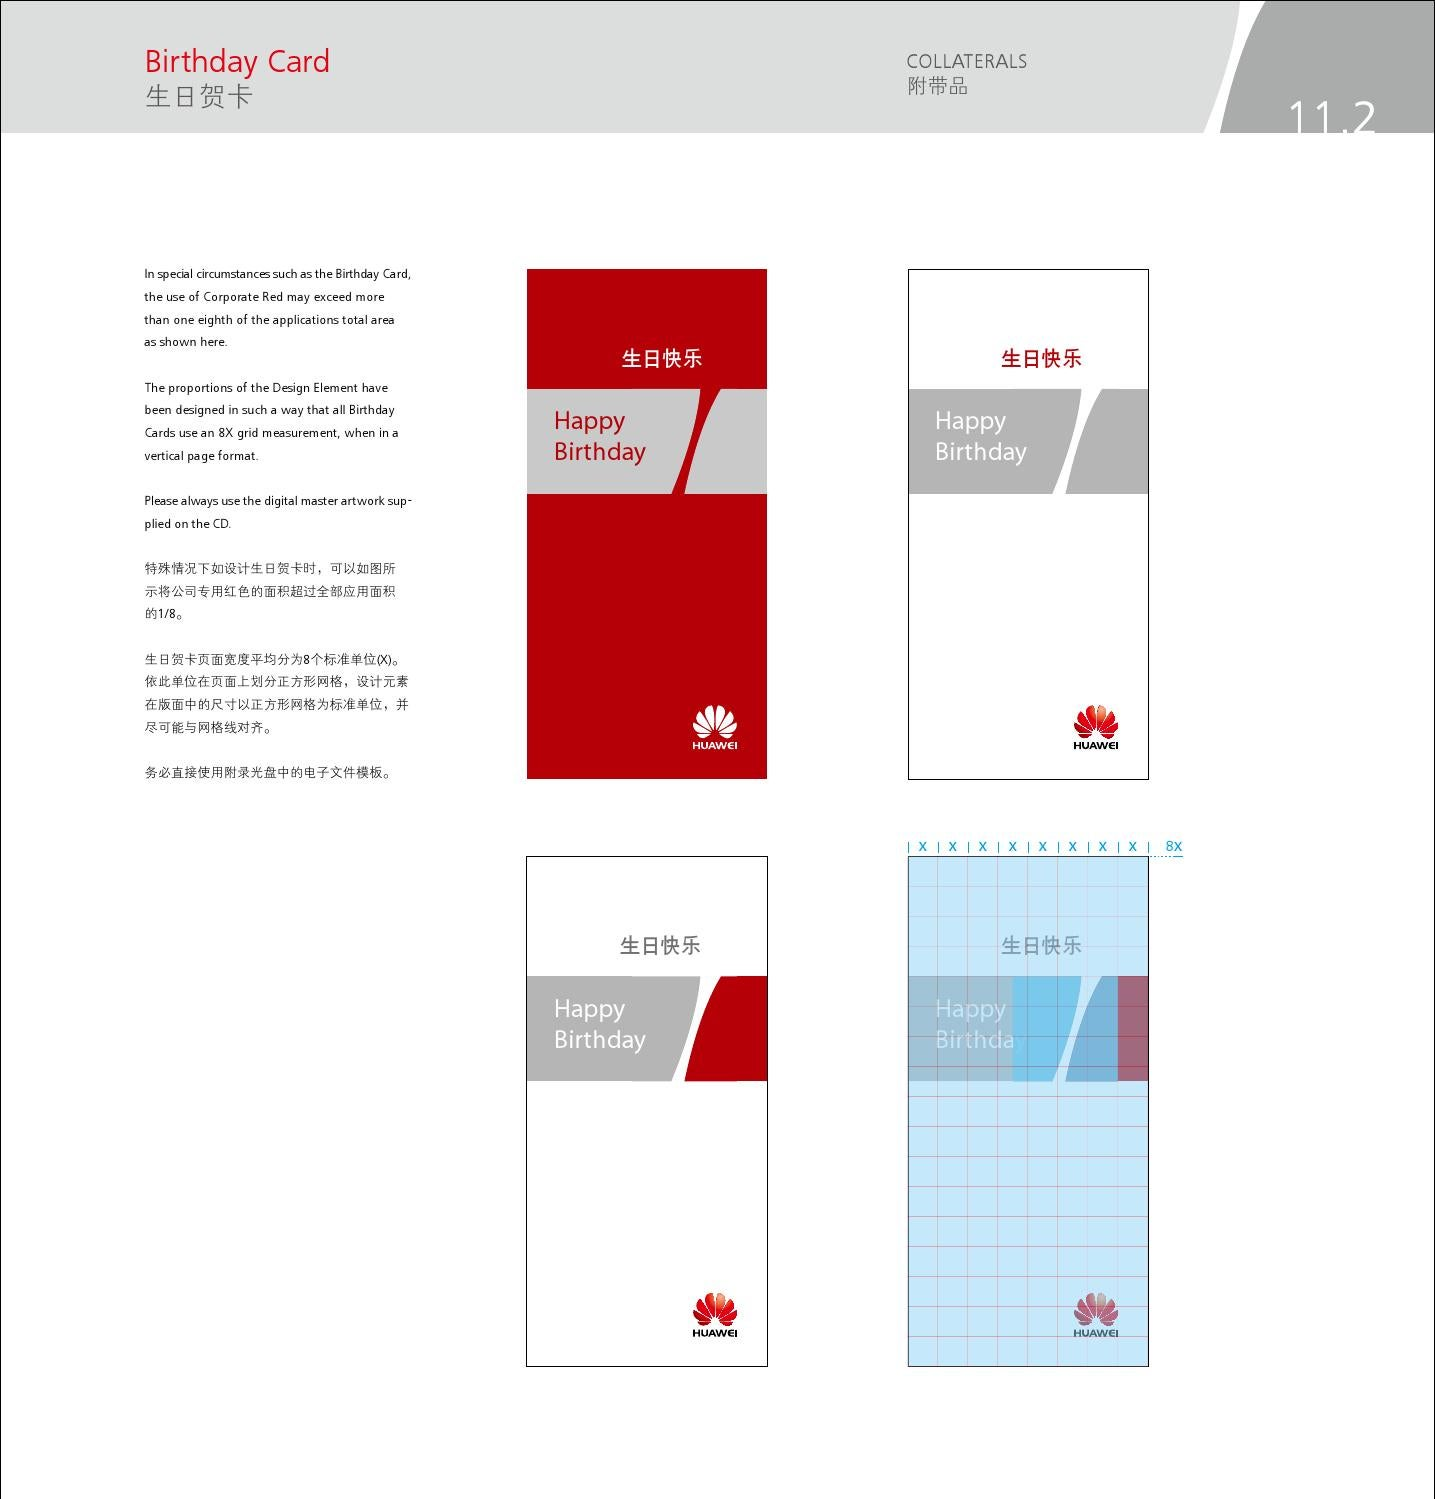 HUAWEI Brand Guidelines by lifending issuu